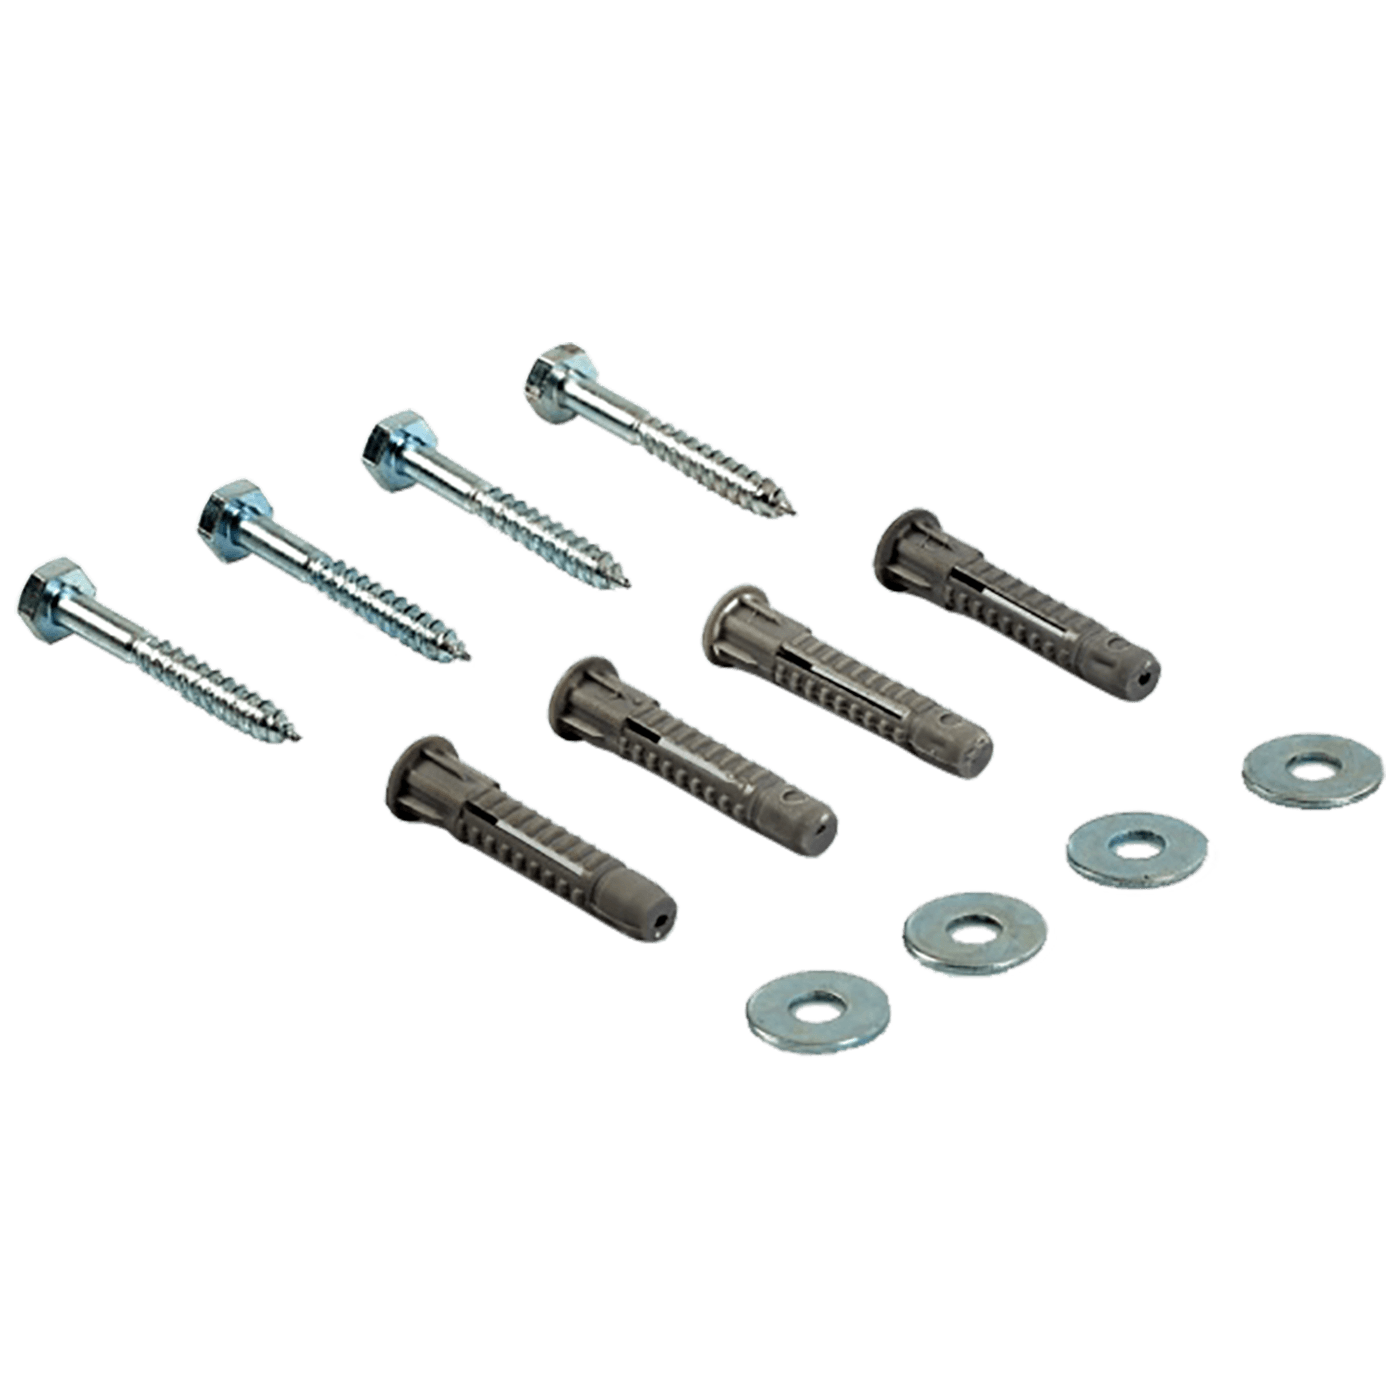 SAB - V0060 - Screw Set HQ